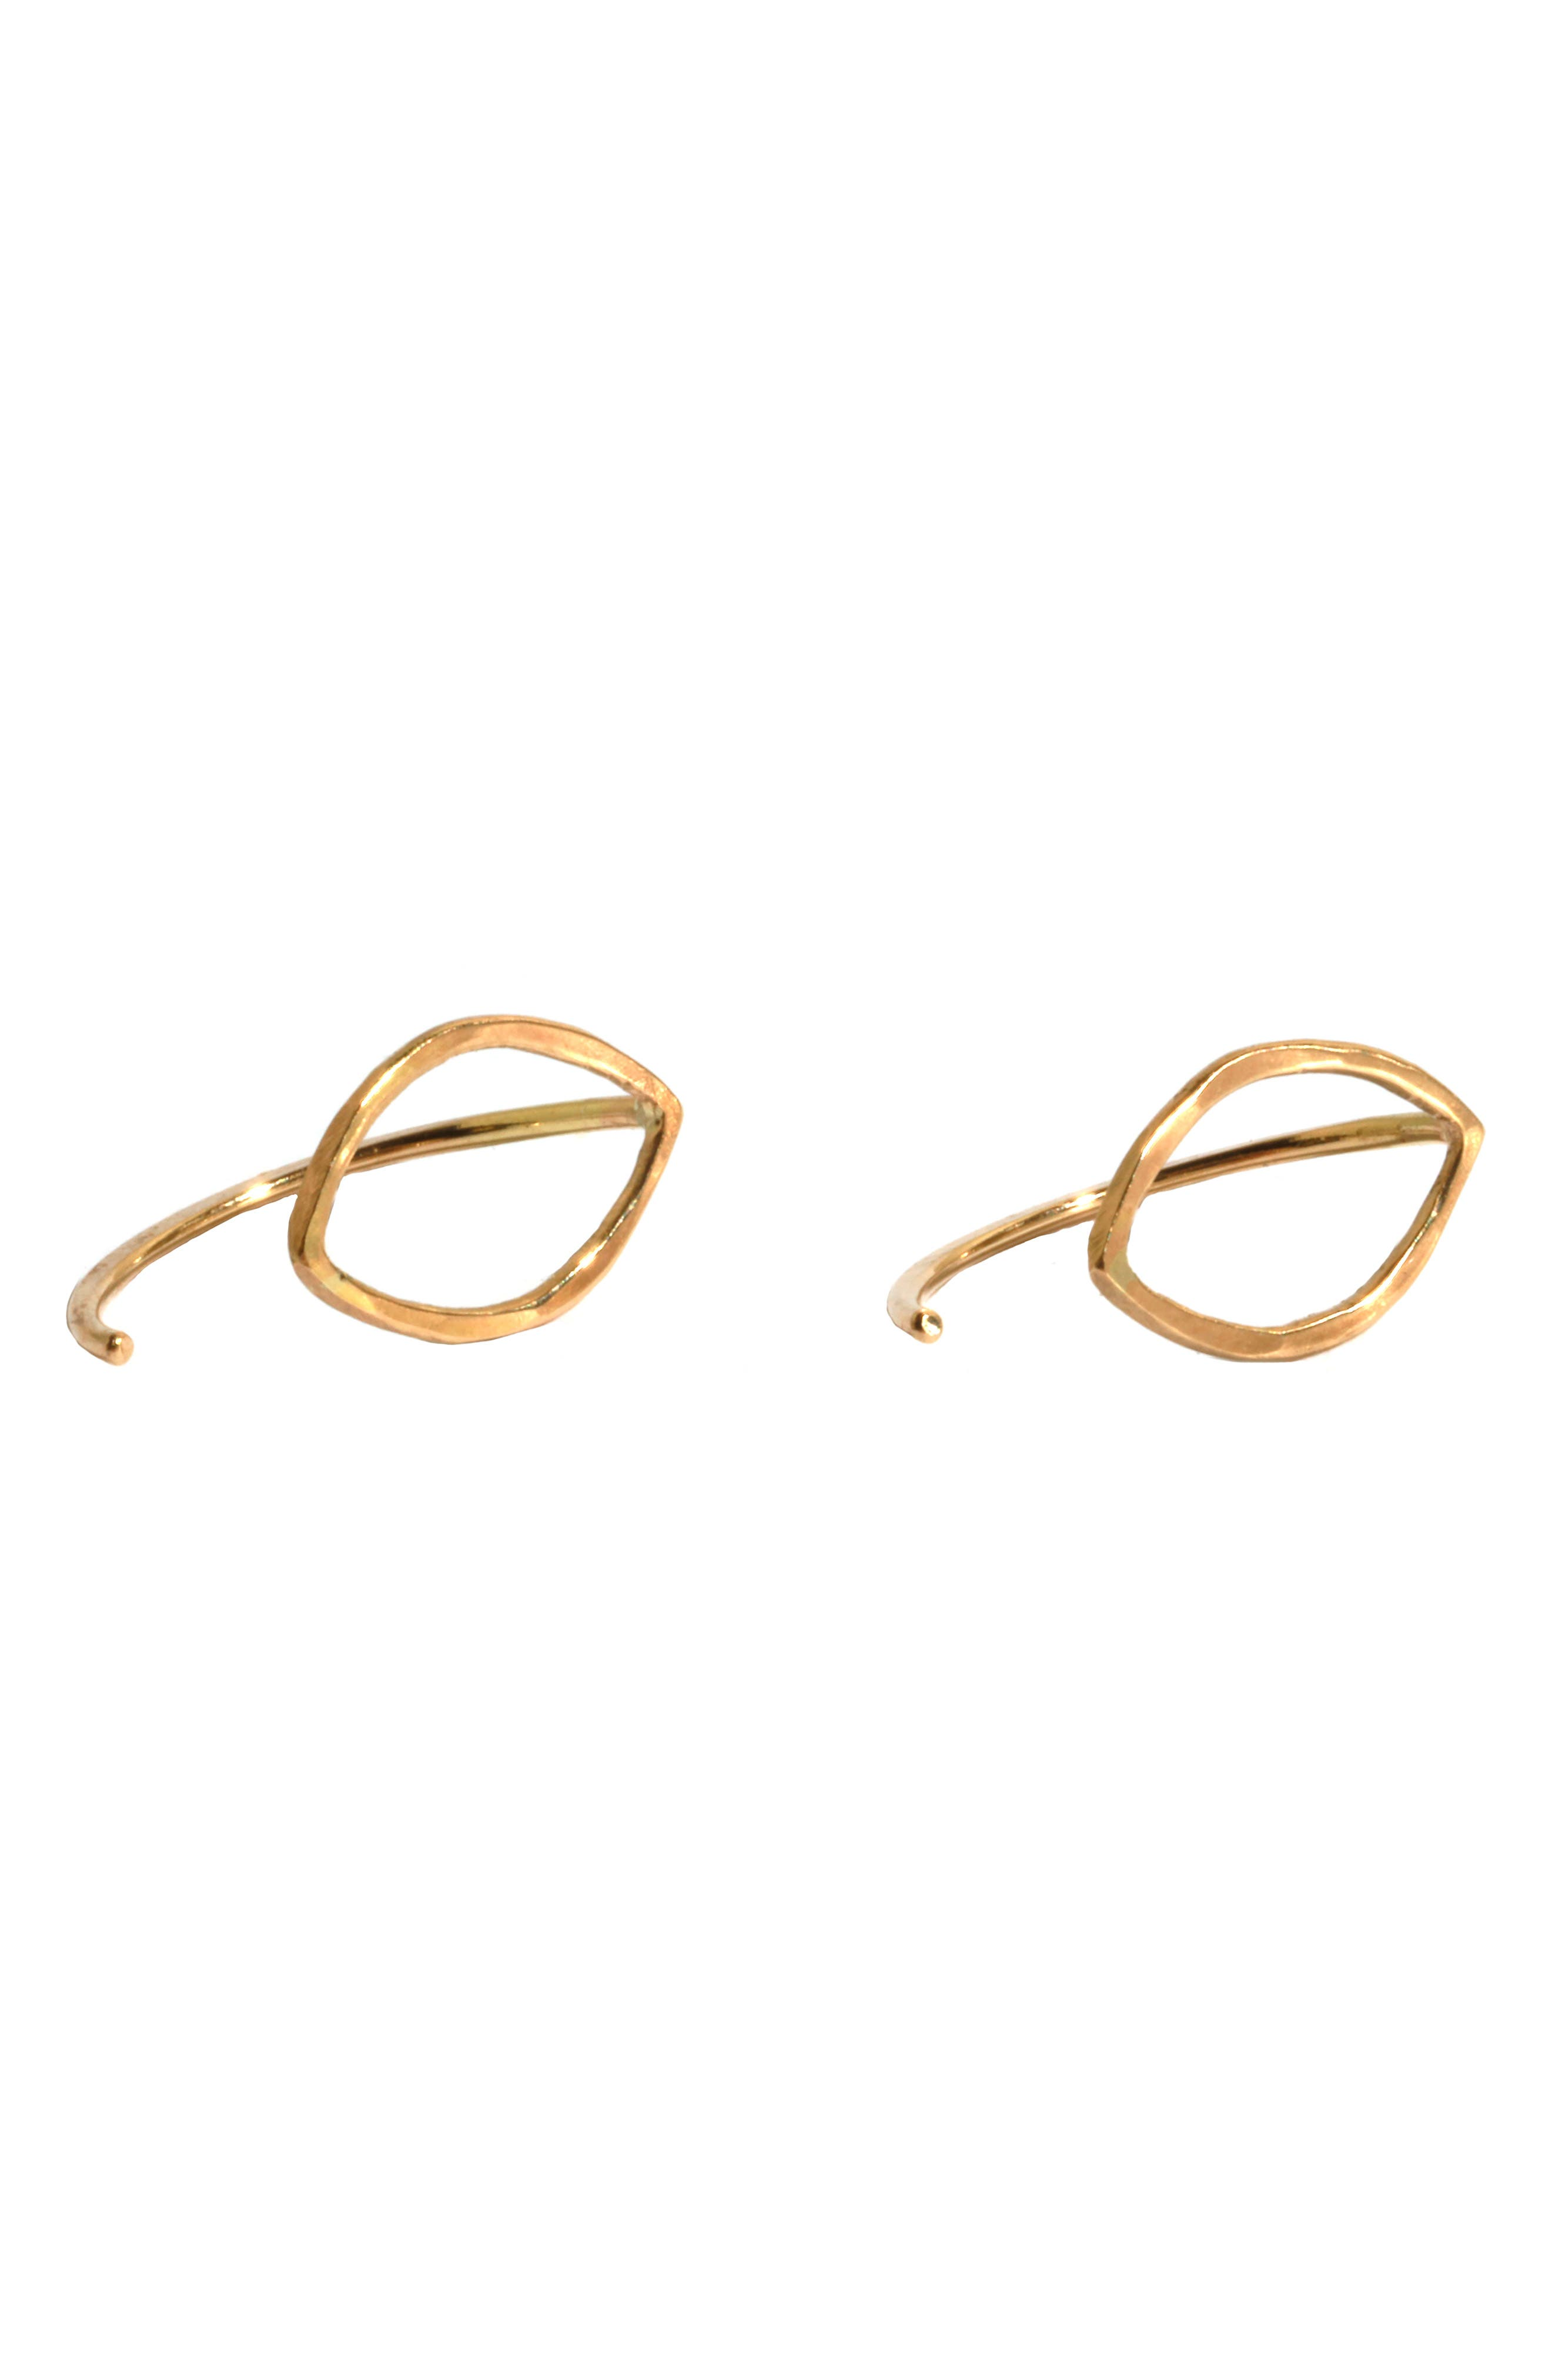 Small Oval Threader Stud Earrings,                         Main,                         color, YELLOW GOLD